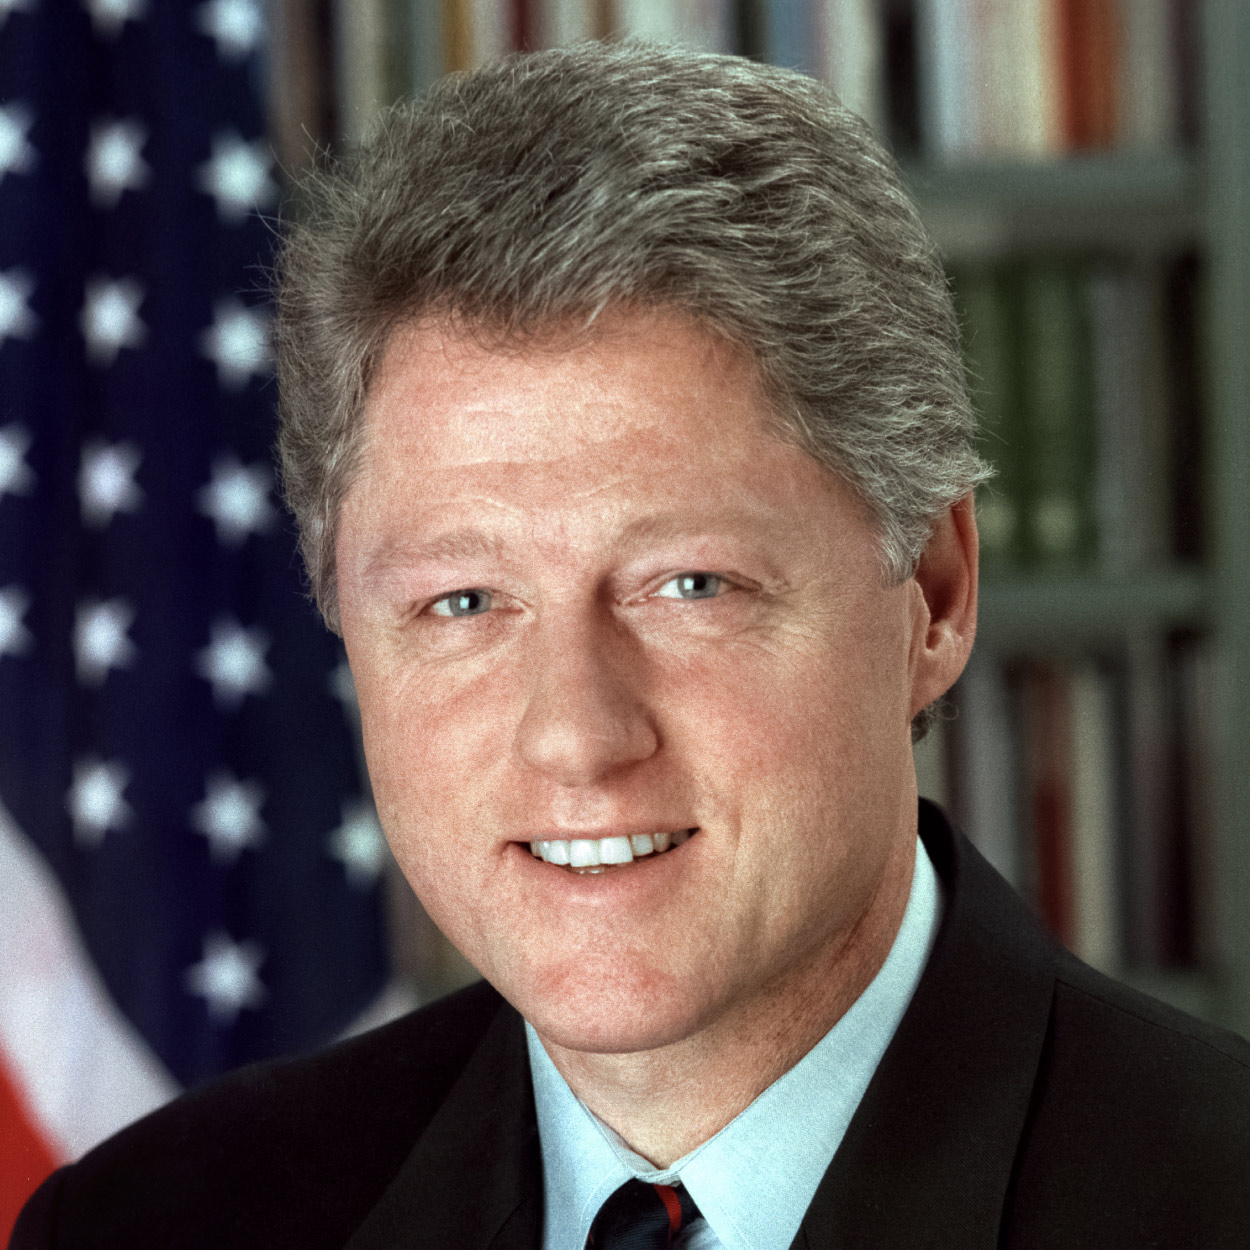 Portrait of William J. Clinton, the 42nd President of the United States